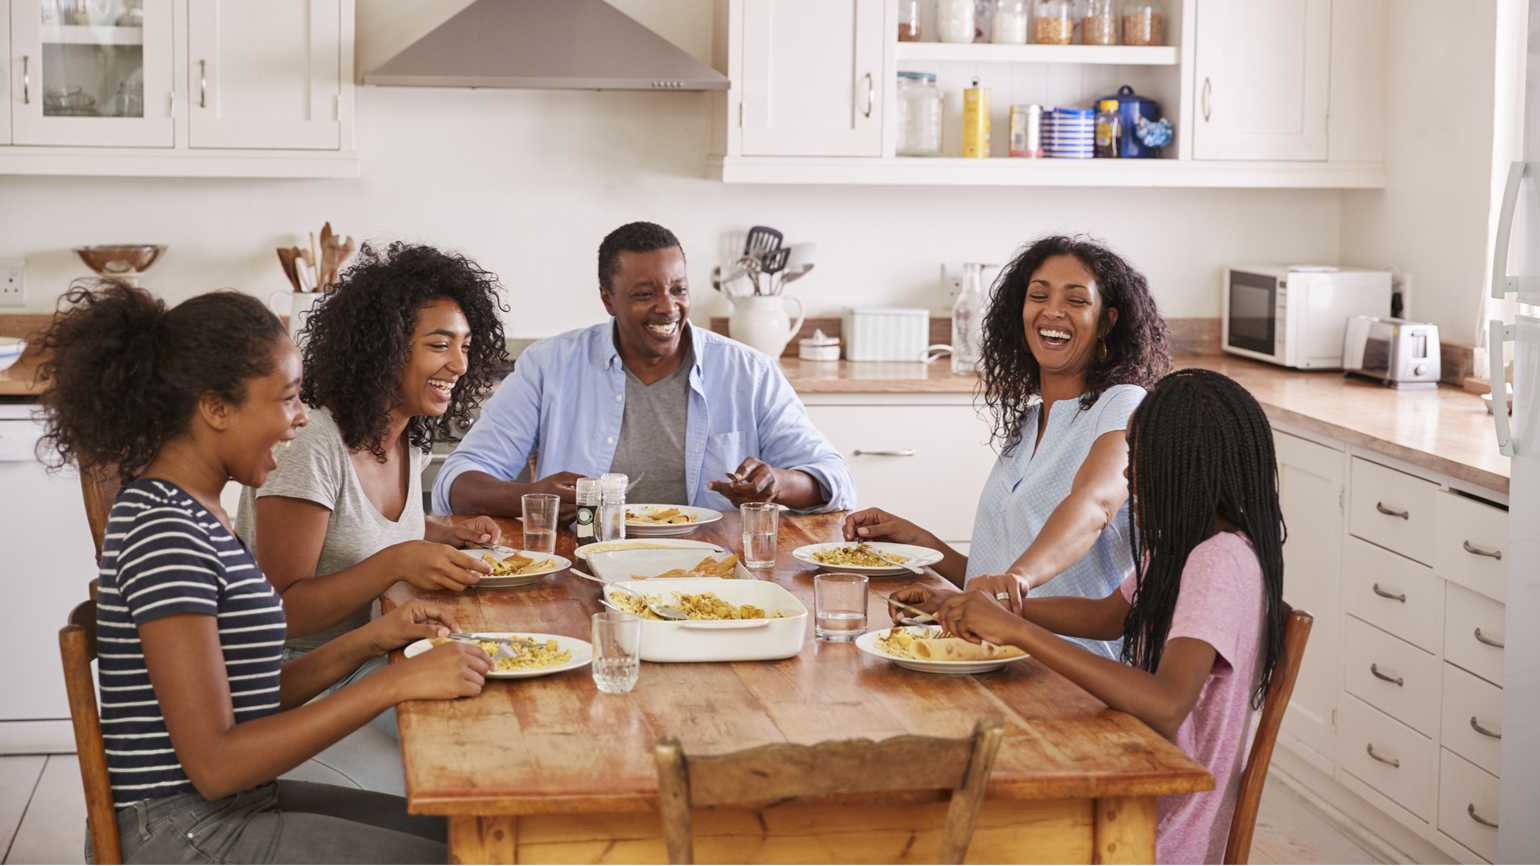 A diverse happy family having dinner.